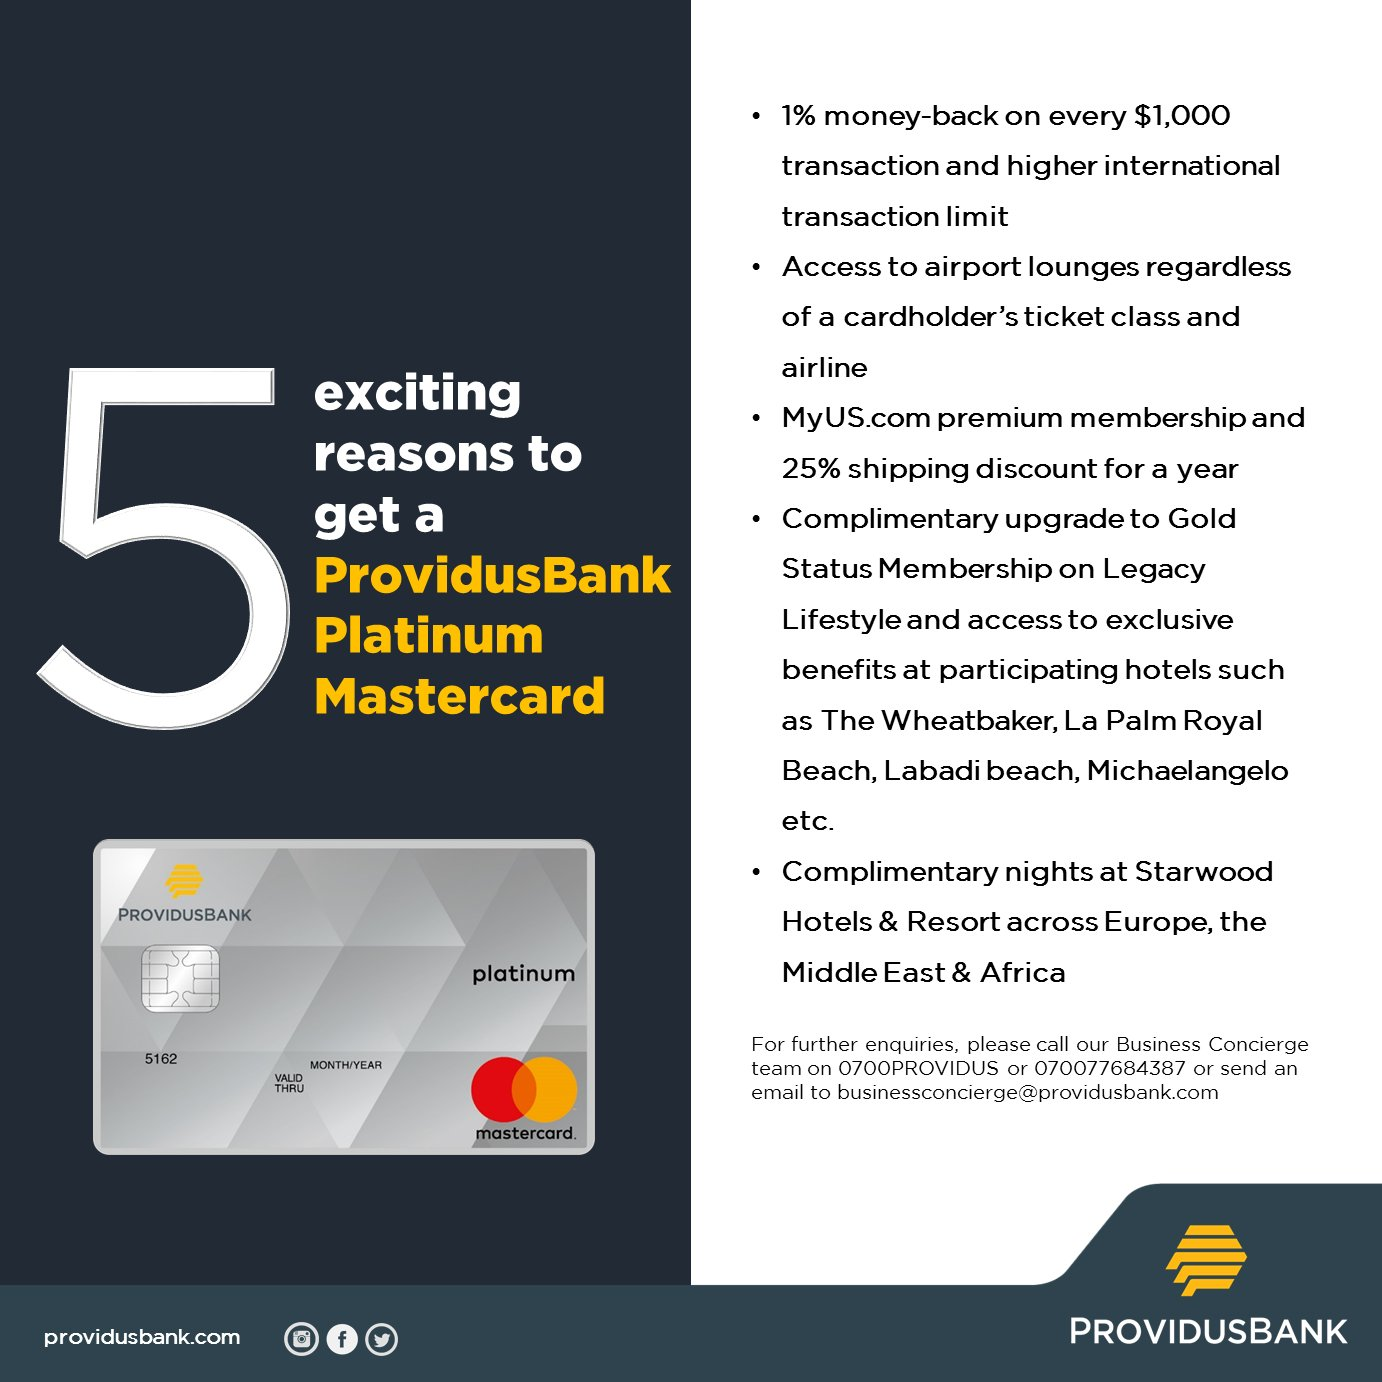 5 EXCITING REASONS TO GET A PROVIDUS BANK PLATINUM MASTERCARD